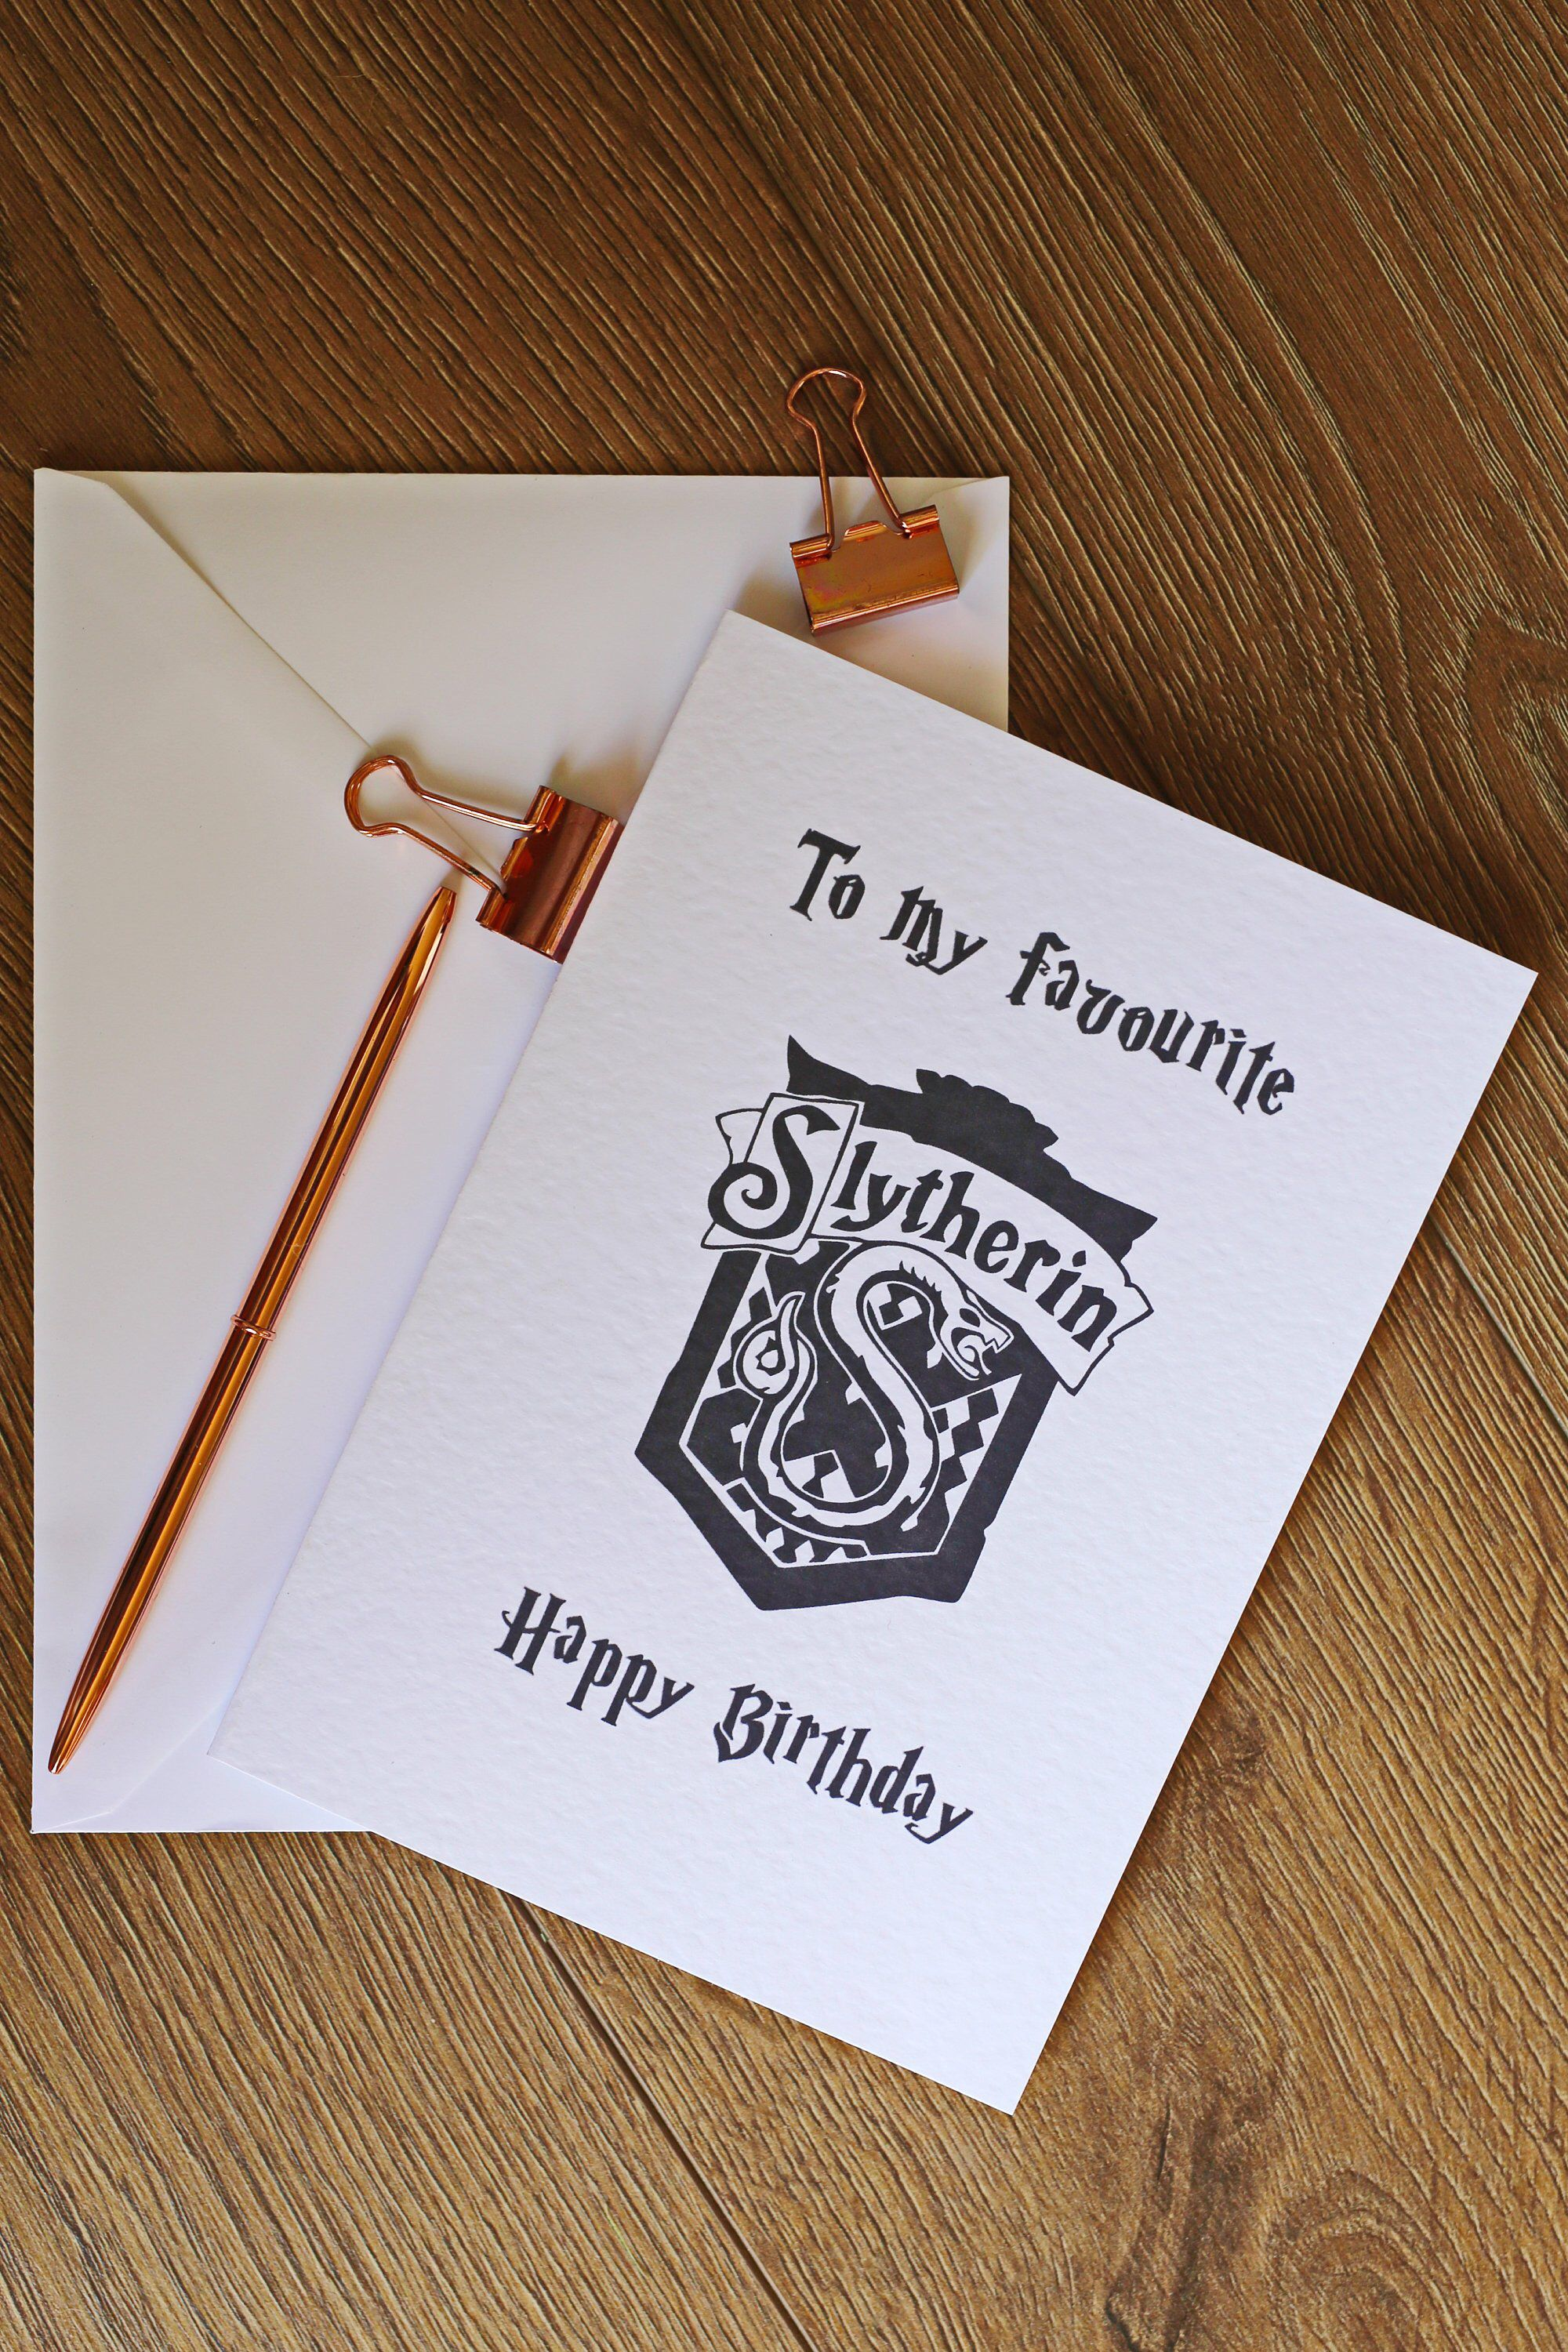 Harry Potter Personalised Slytherin Birthday Card By Freyaleedesigns On Etsy Https Www Harry Potter Gifts Diy Harry Potter Cards Harry Potter Birthday Cards